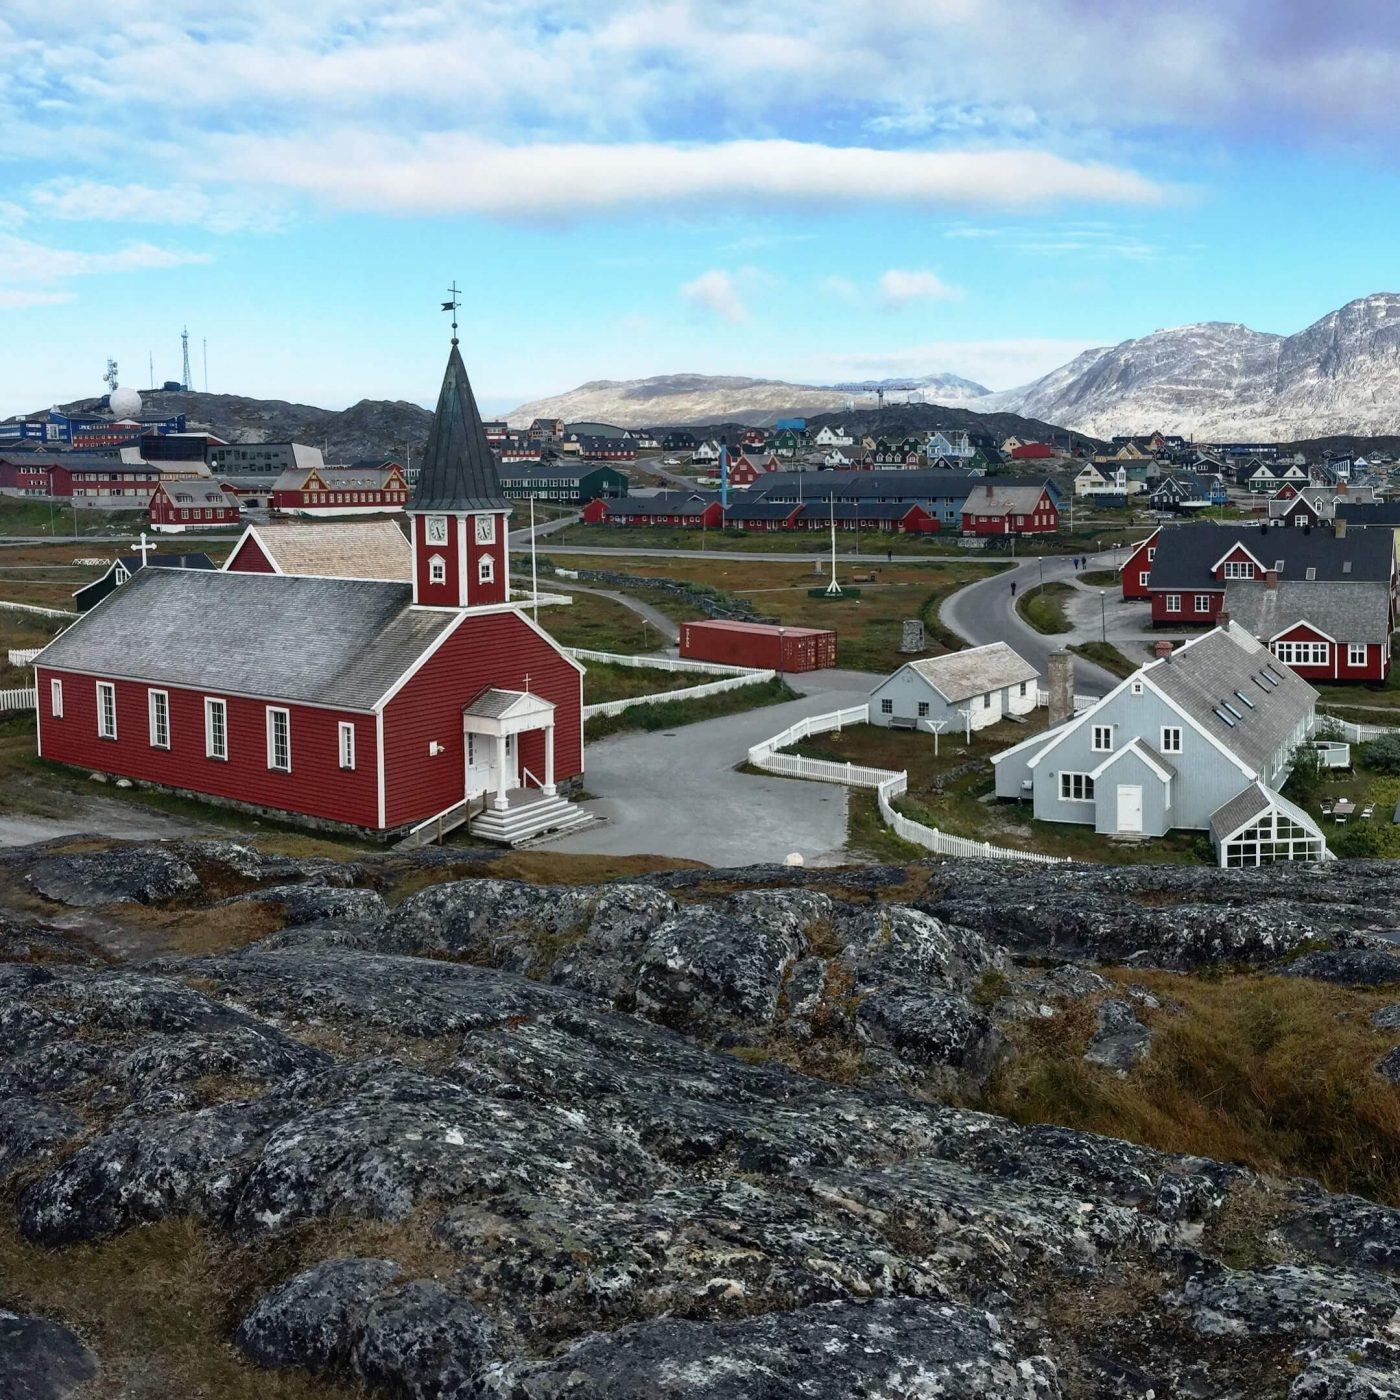 The church in Nuuk. Photo by Leslie Carter